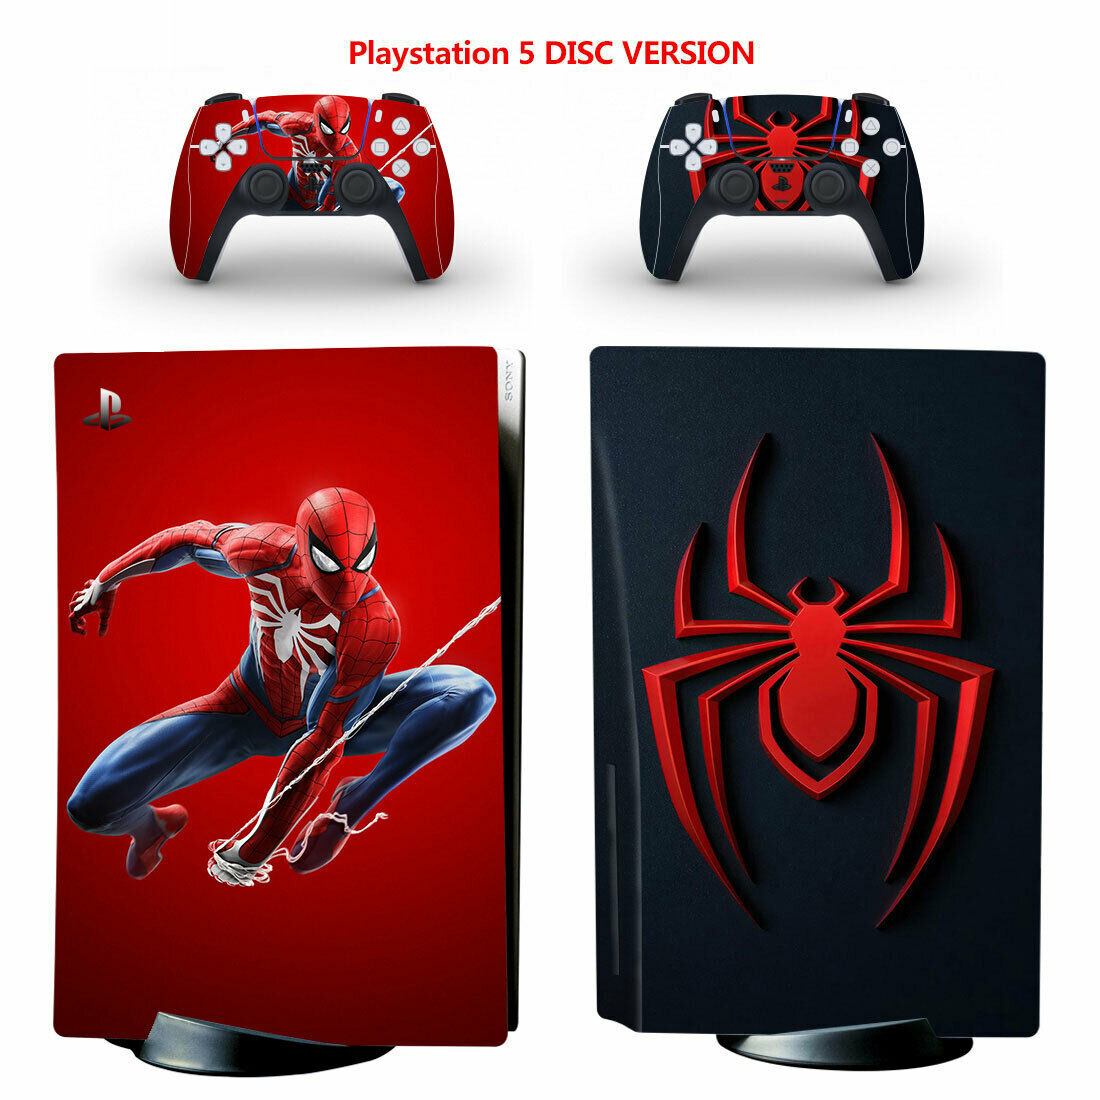 Spiderman PS5 PlayStation 5 Disc Console Controllers Vinyl Decal Skin Sticker